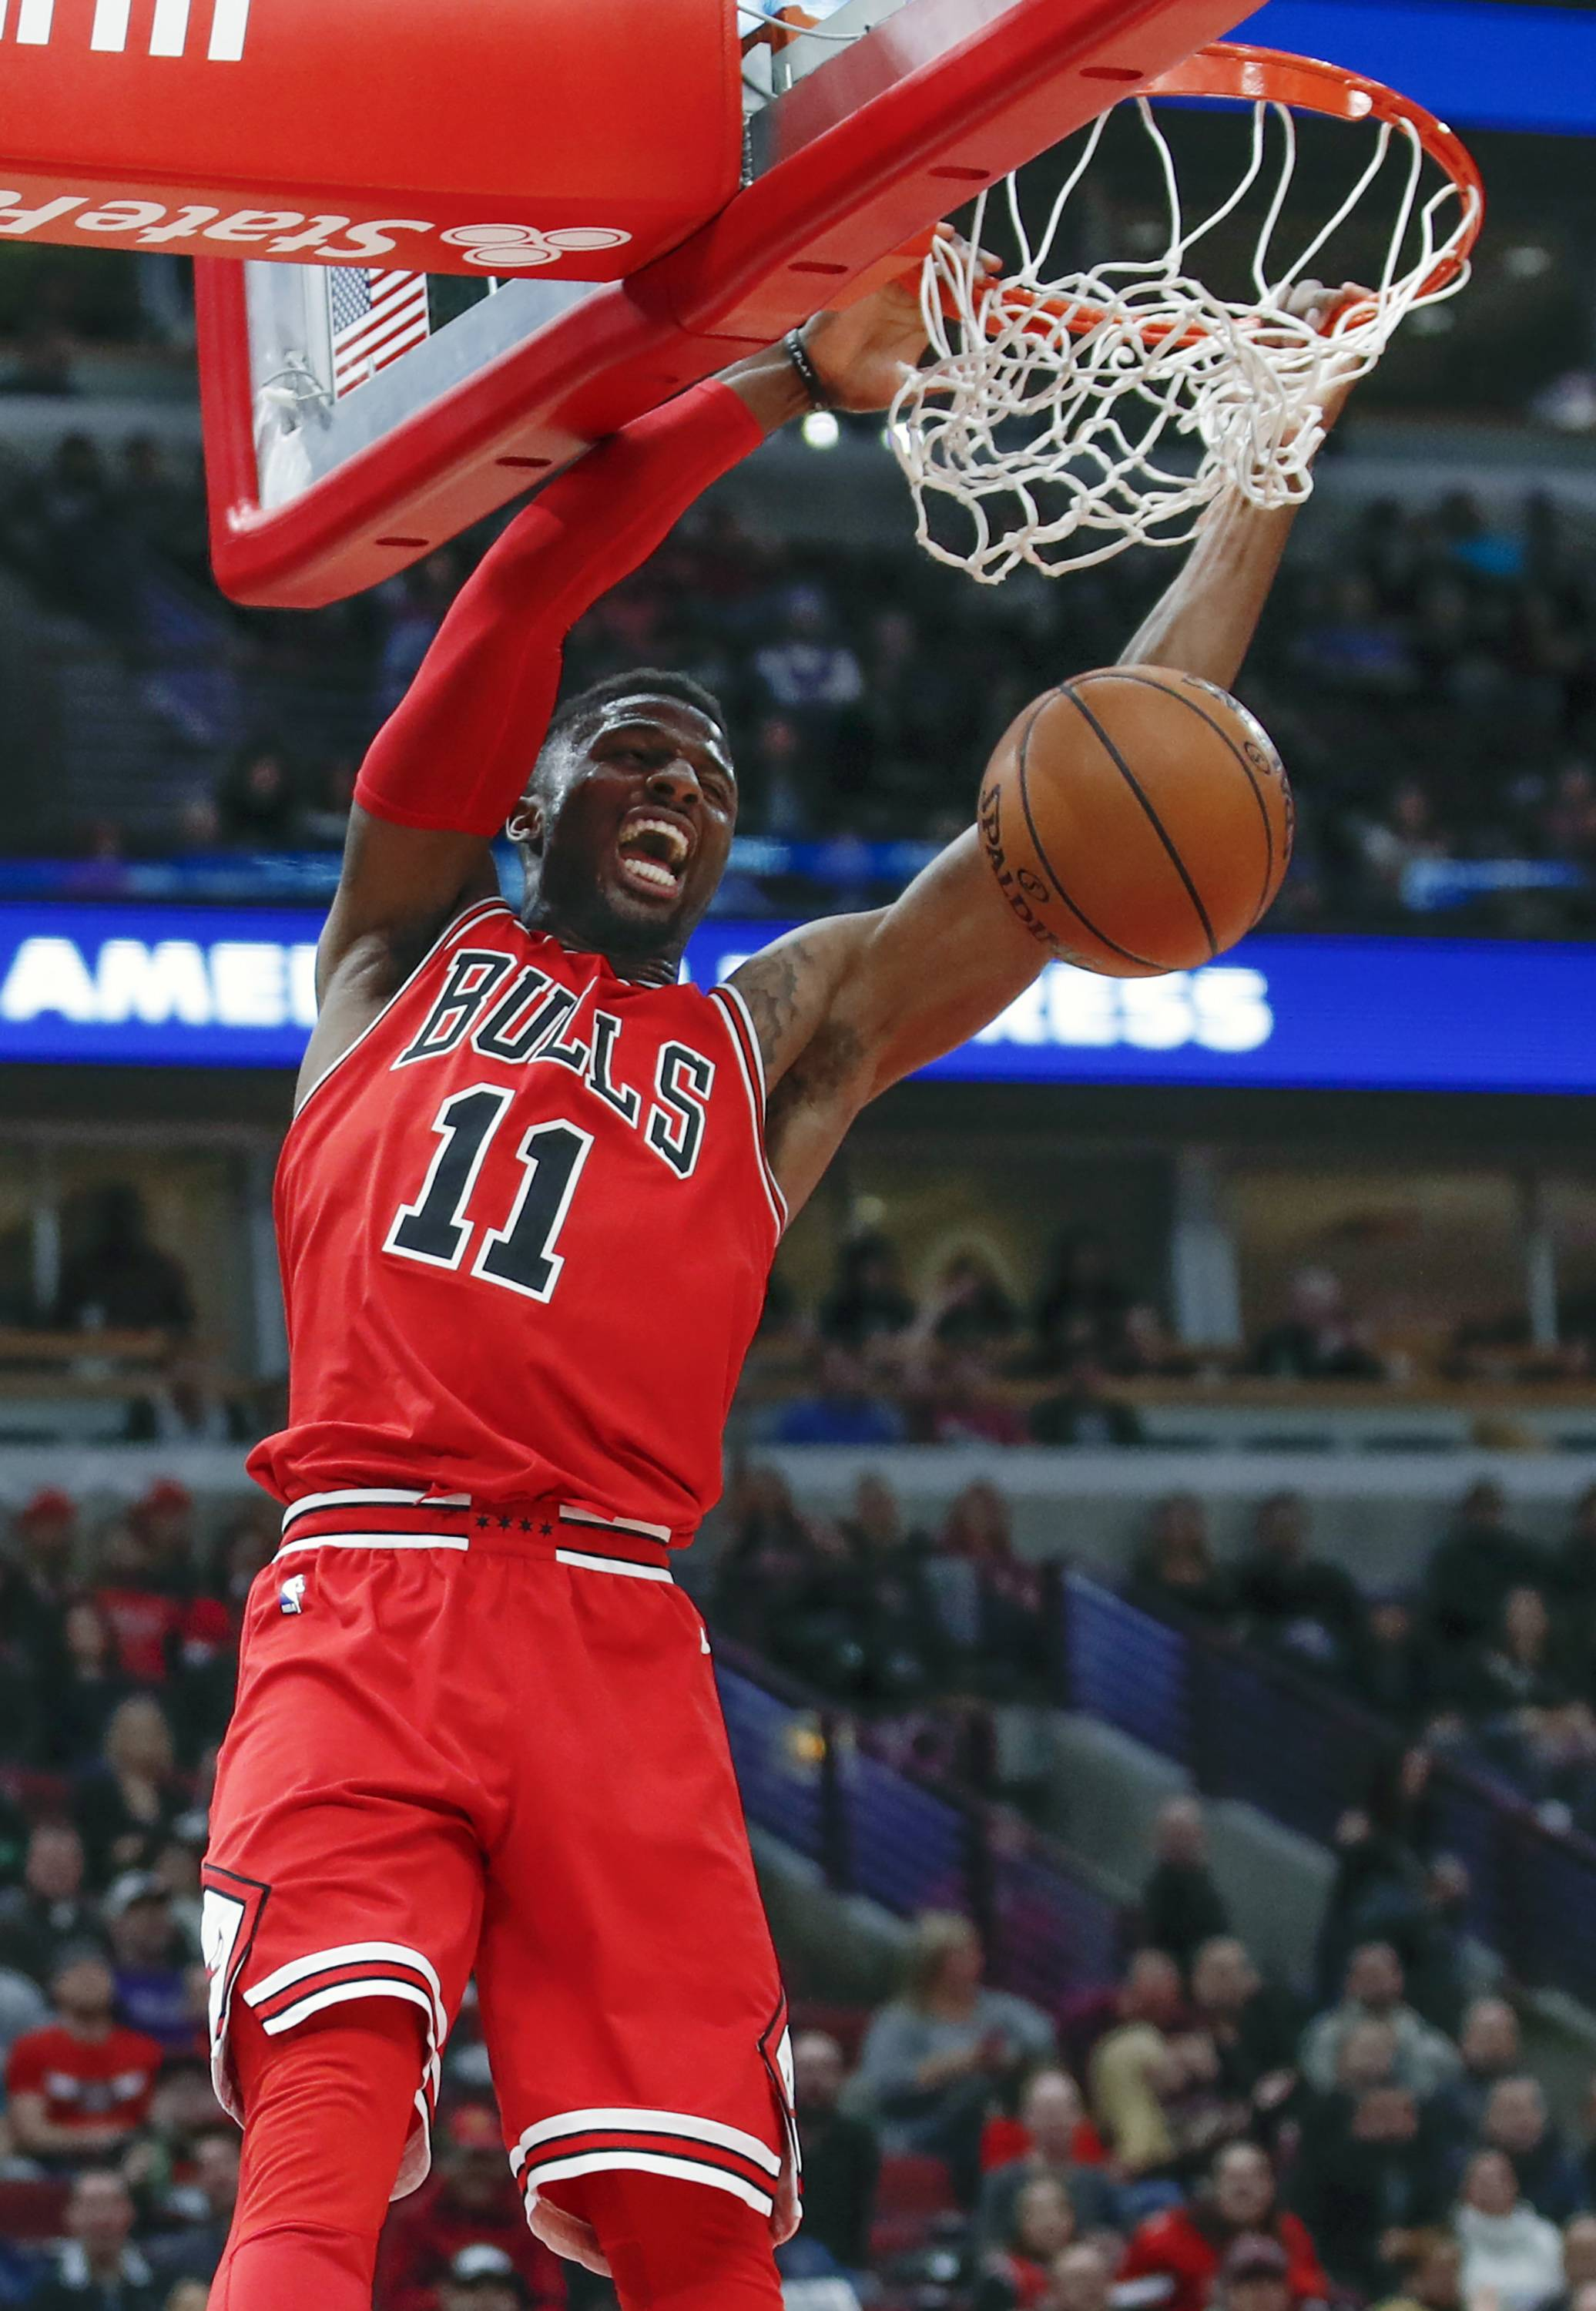 Chicago Bulls guard David Nwaba dunks against the New York Knicks during the second half of an NBA basketball game, Saturday, Dec. 9, 2017, in Chicago.